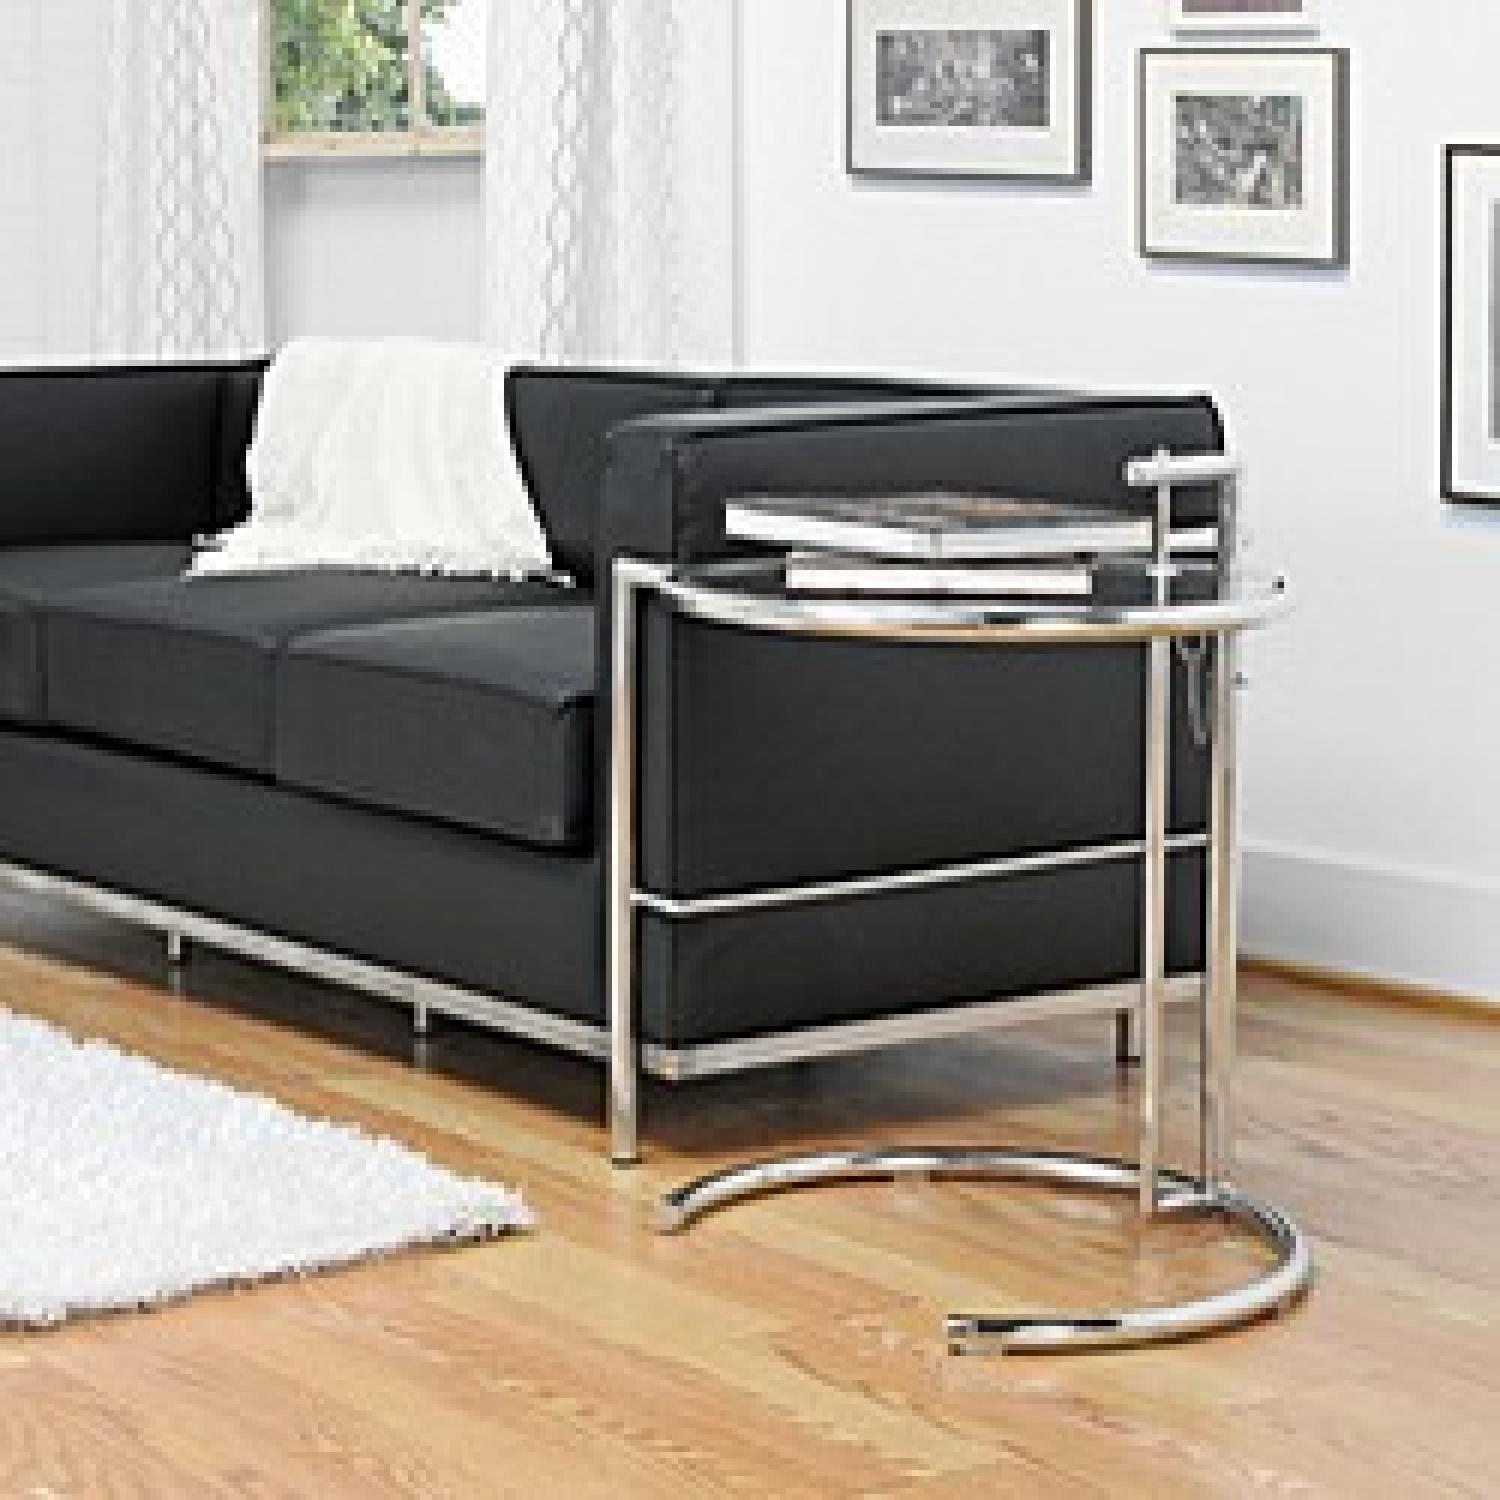 Eileen Gray Stainless Steel Accent Table - image-3